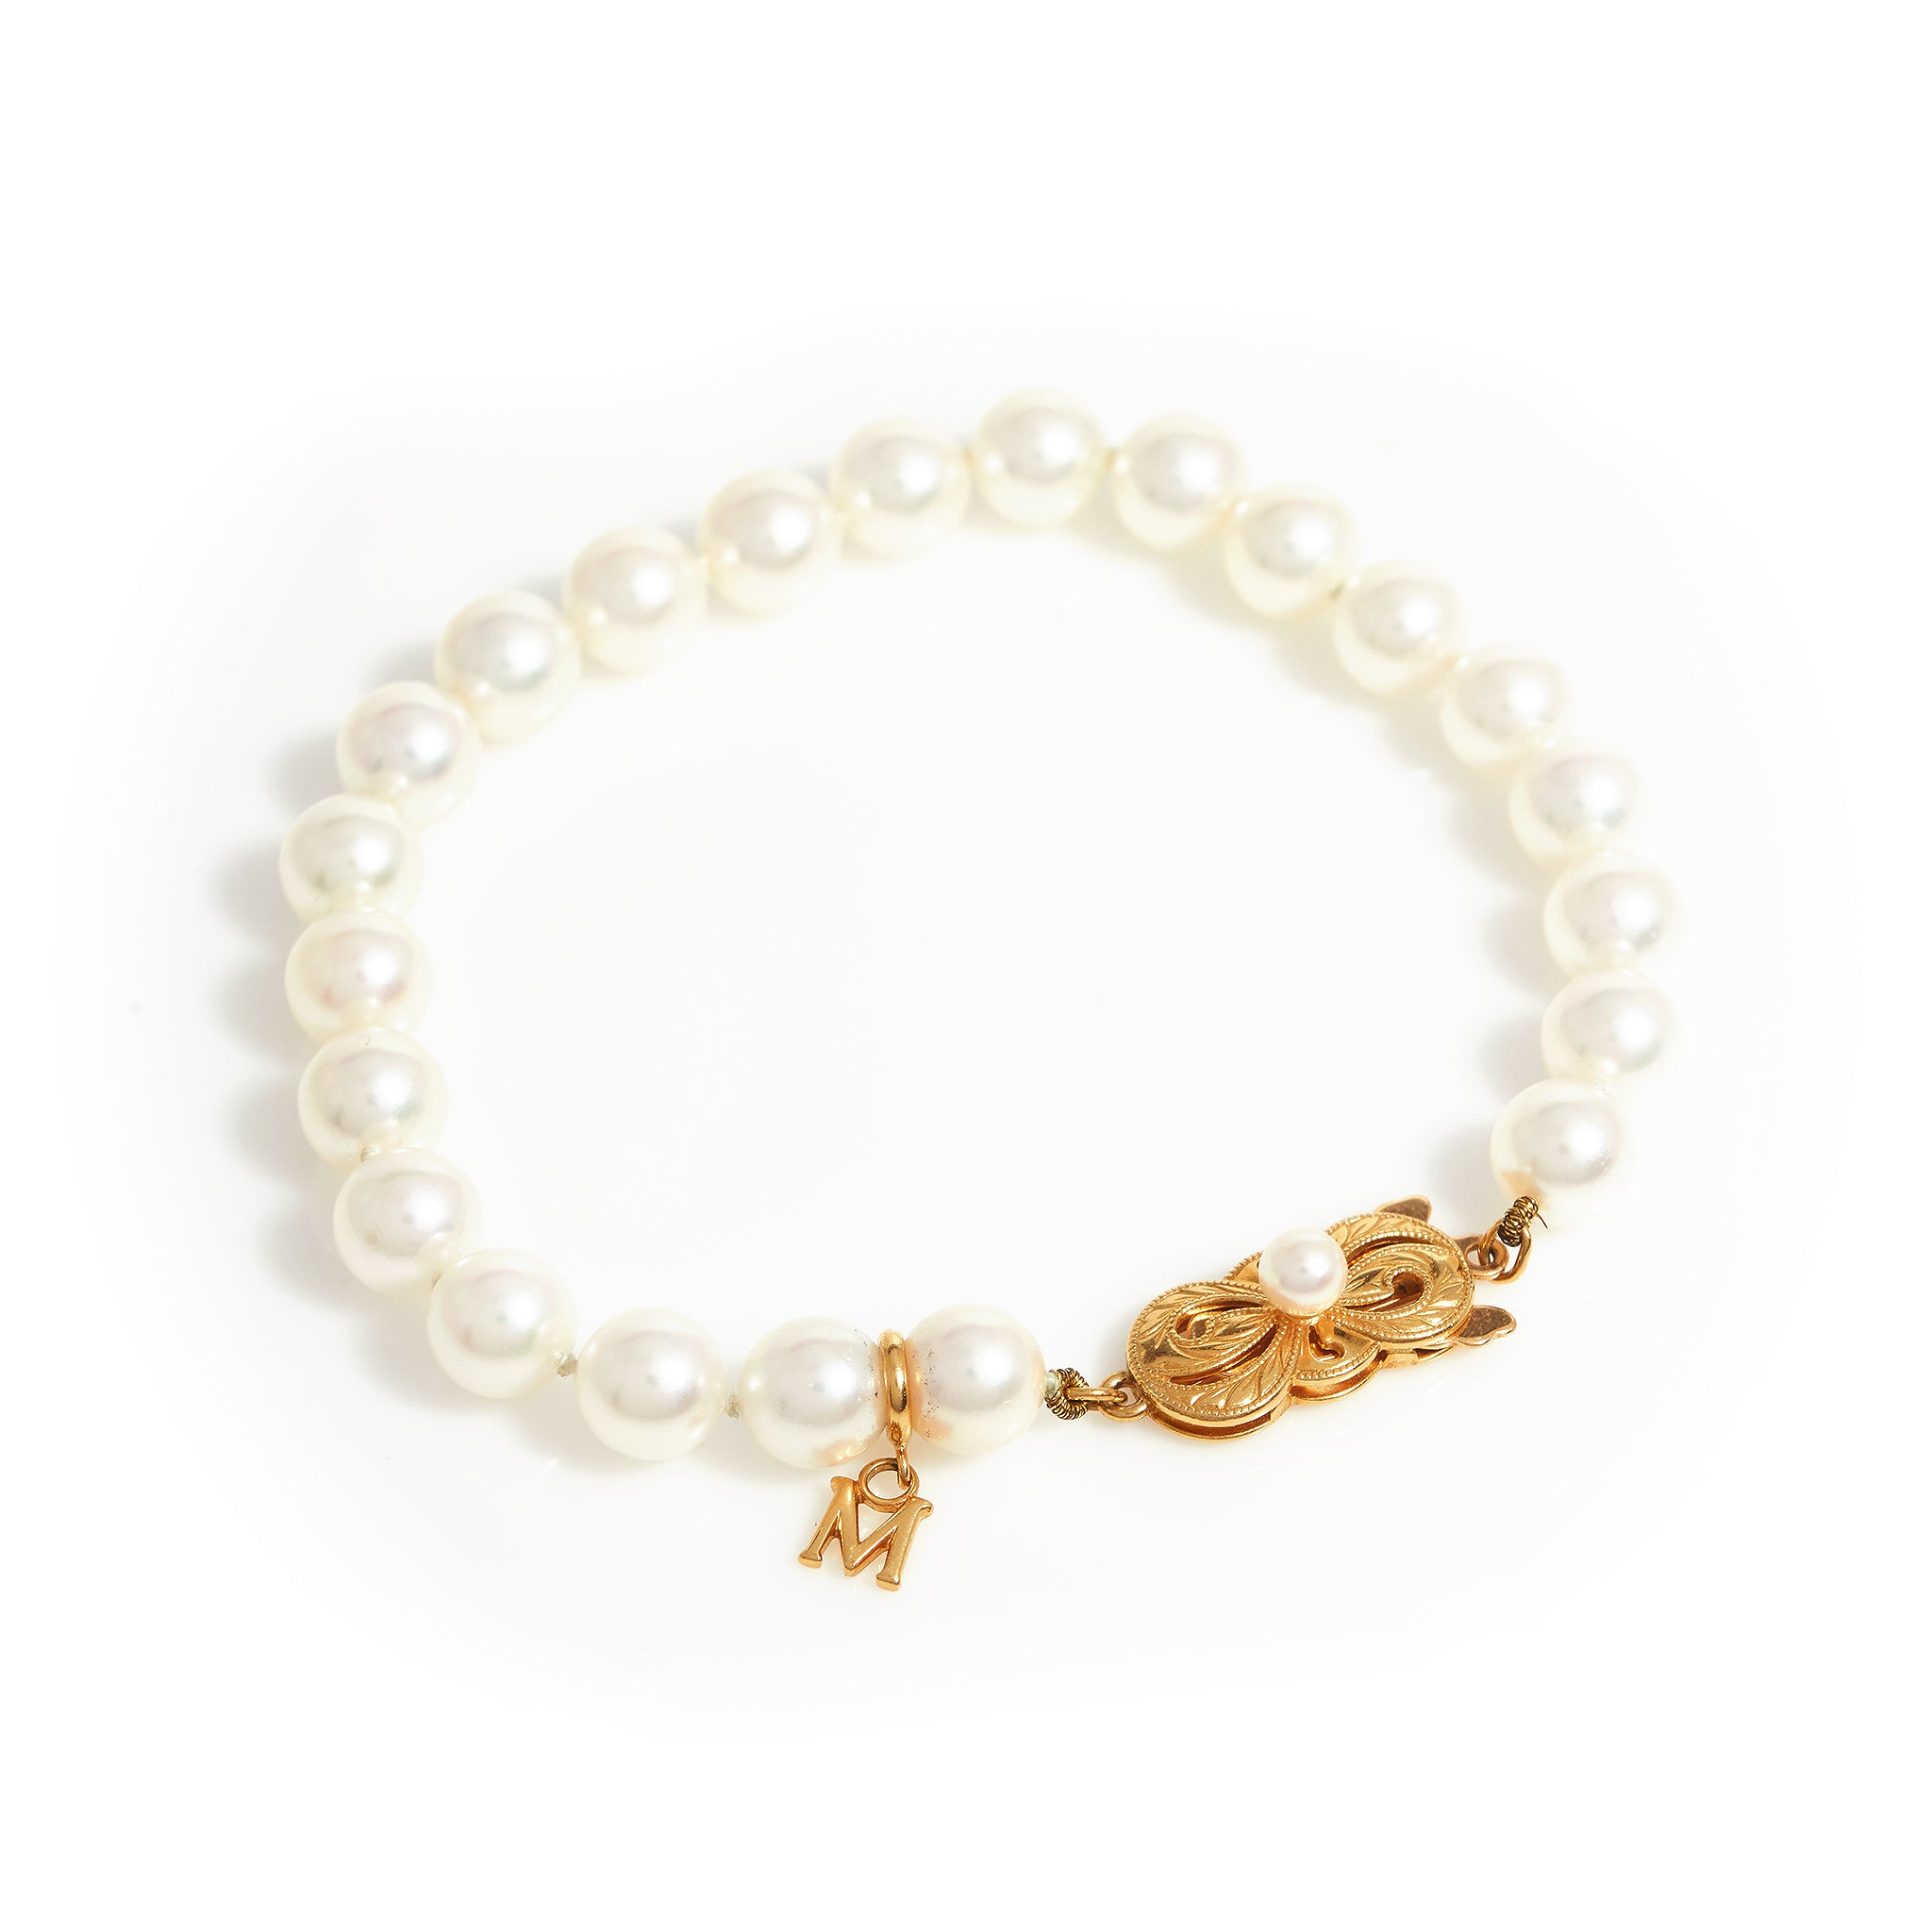 *SOLD*Mikimoto Pearl and Yellow Gold Bracelet - Sindur